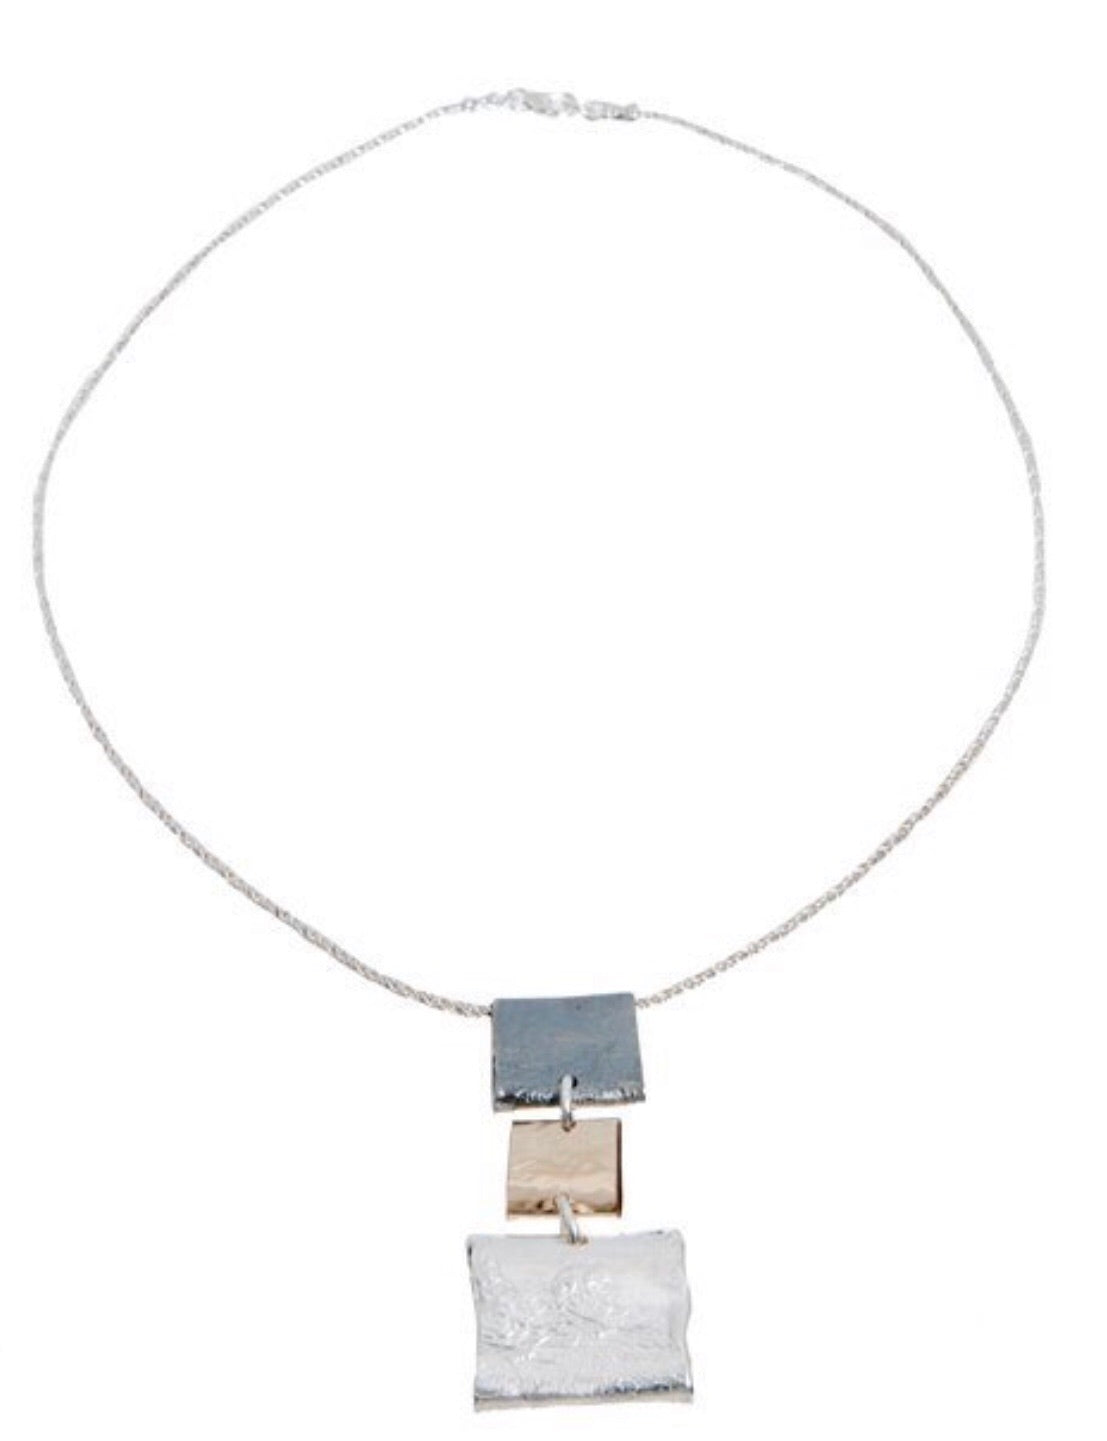 DH-N1746 Silver 3 drop Square necklace